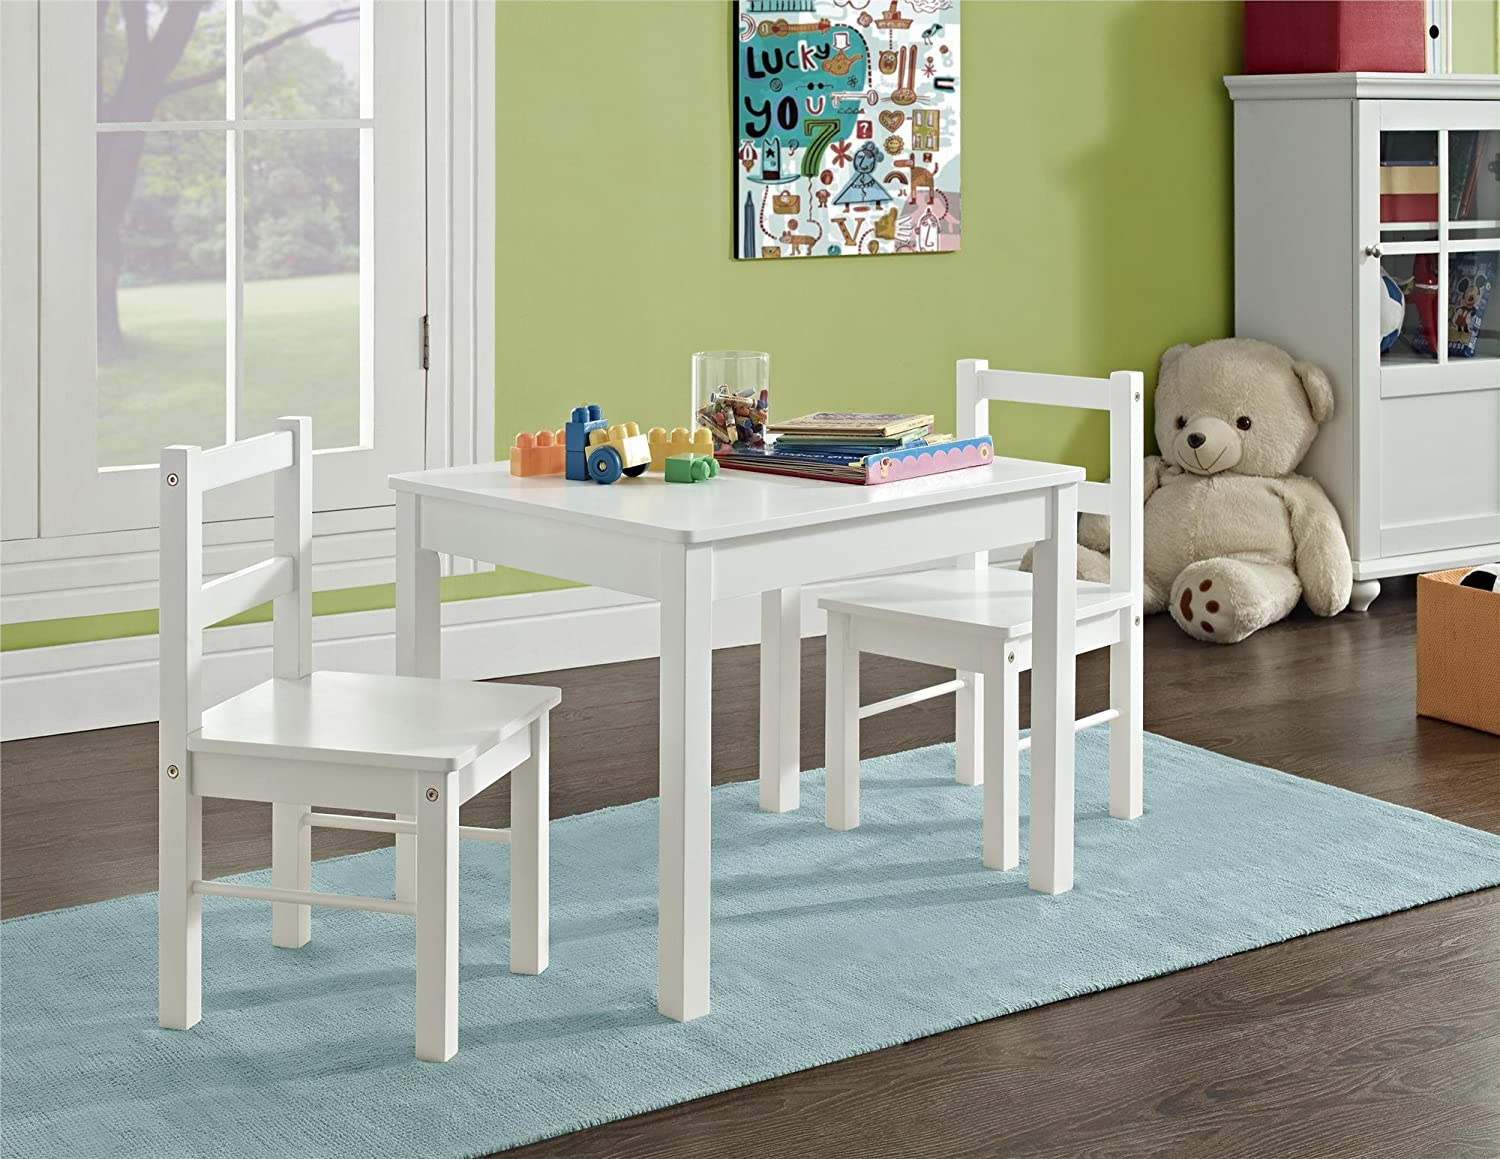 Amazon.com Ameriwood Home Hazel Kidu0027s Table and Chairs Set White Kitchen u0026 Dining : table and chair set for child - Pezcame.Com